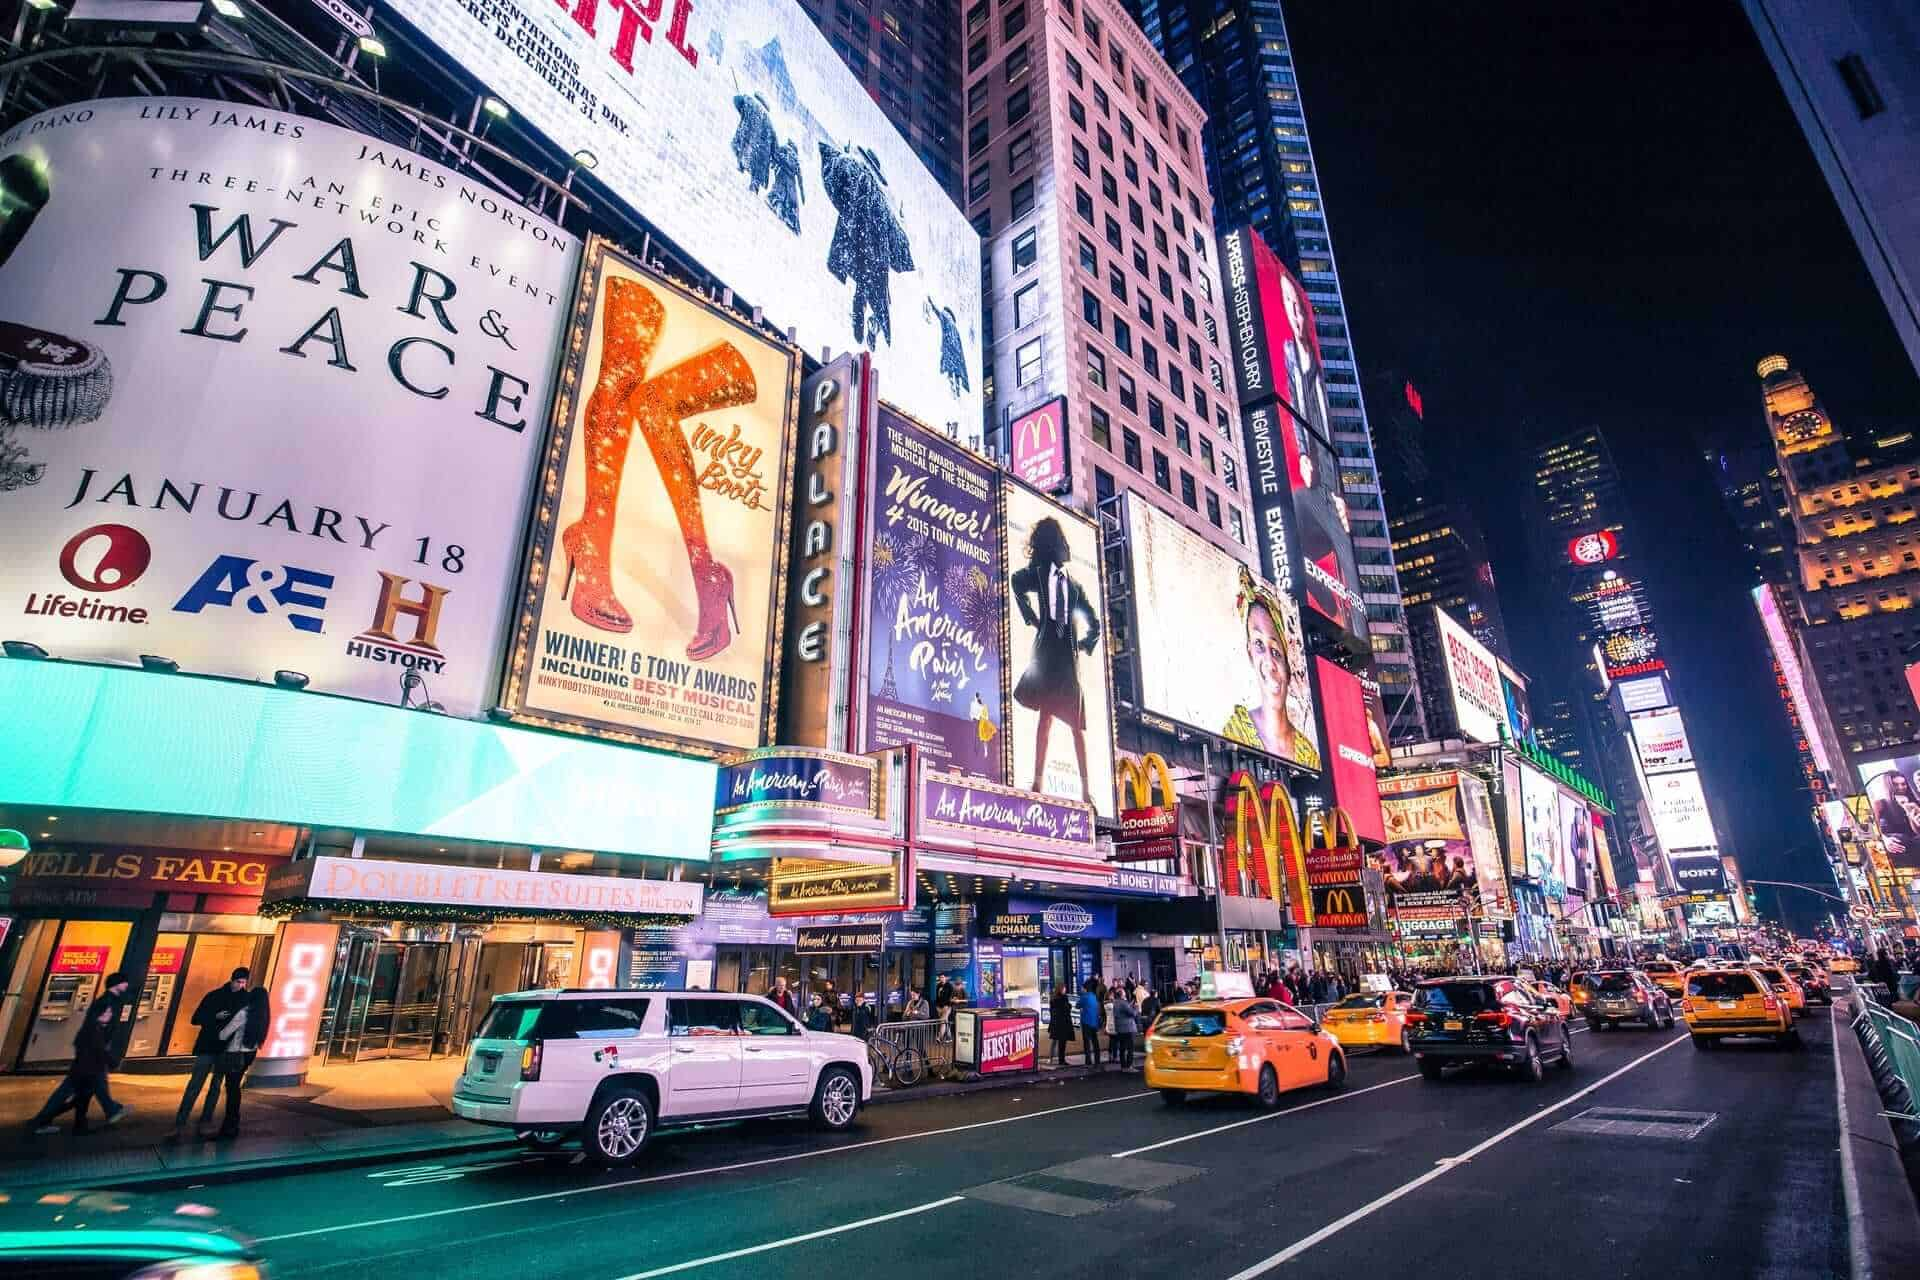 Theatre District, New York